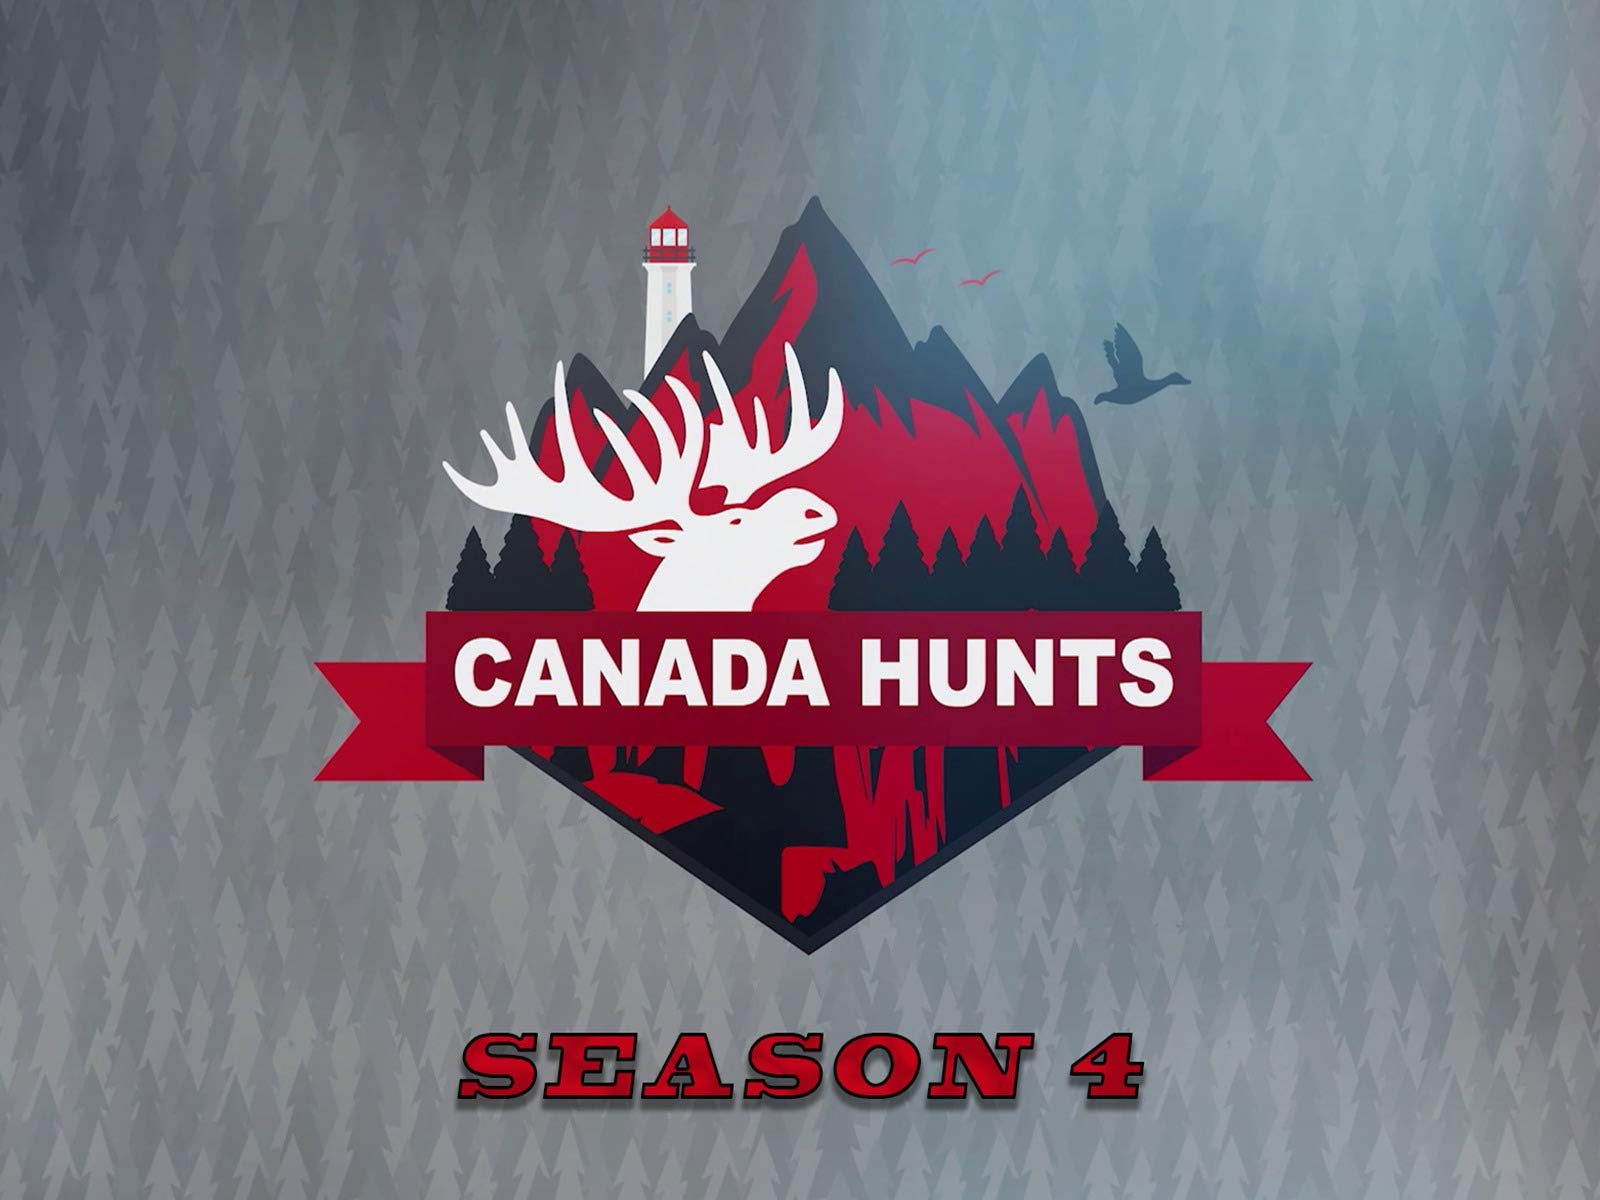 Canada Hunts - Season 4